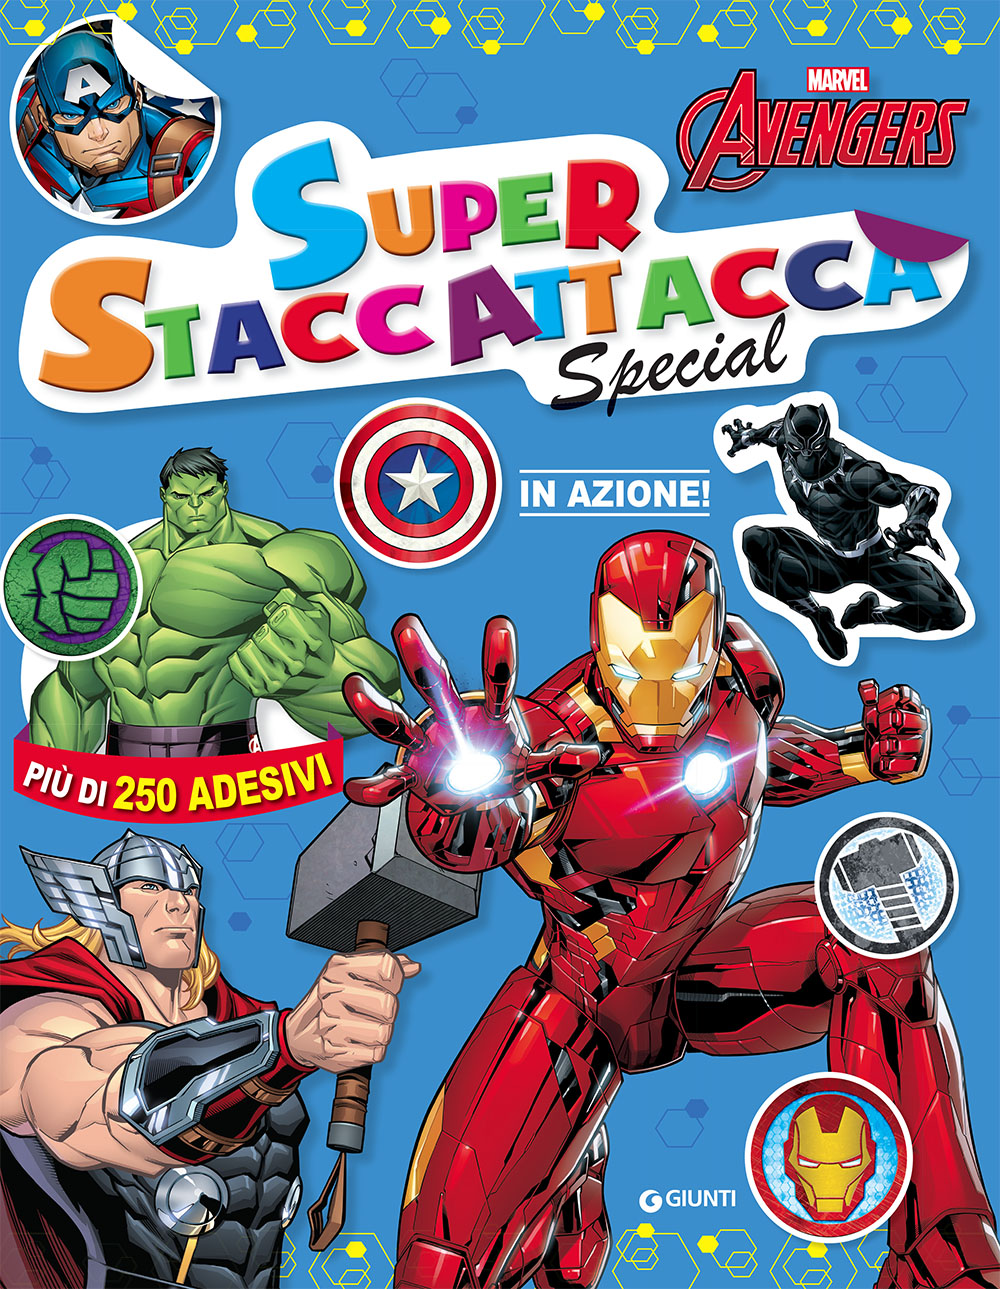 SUPER STACCATTACCA SPECIAL MARVEL AVENGERS